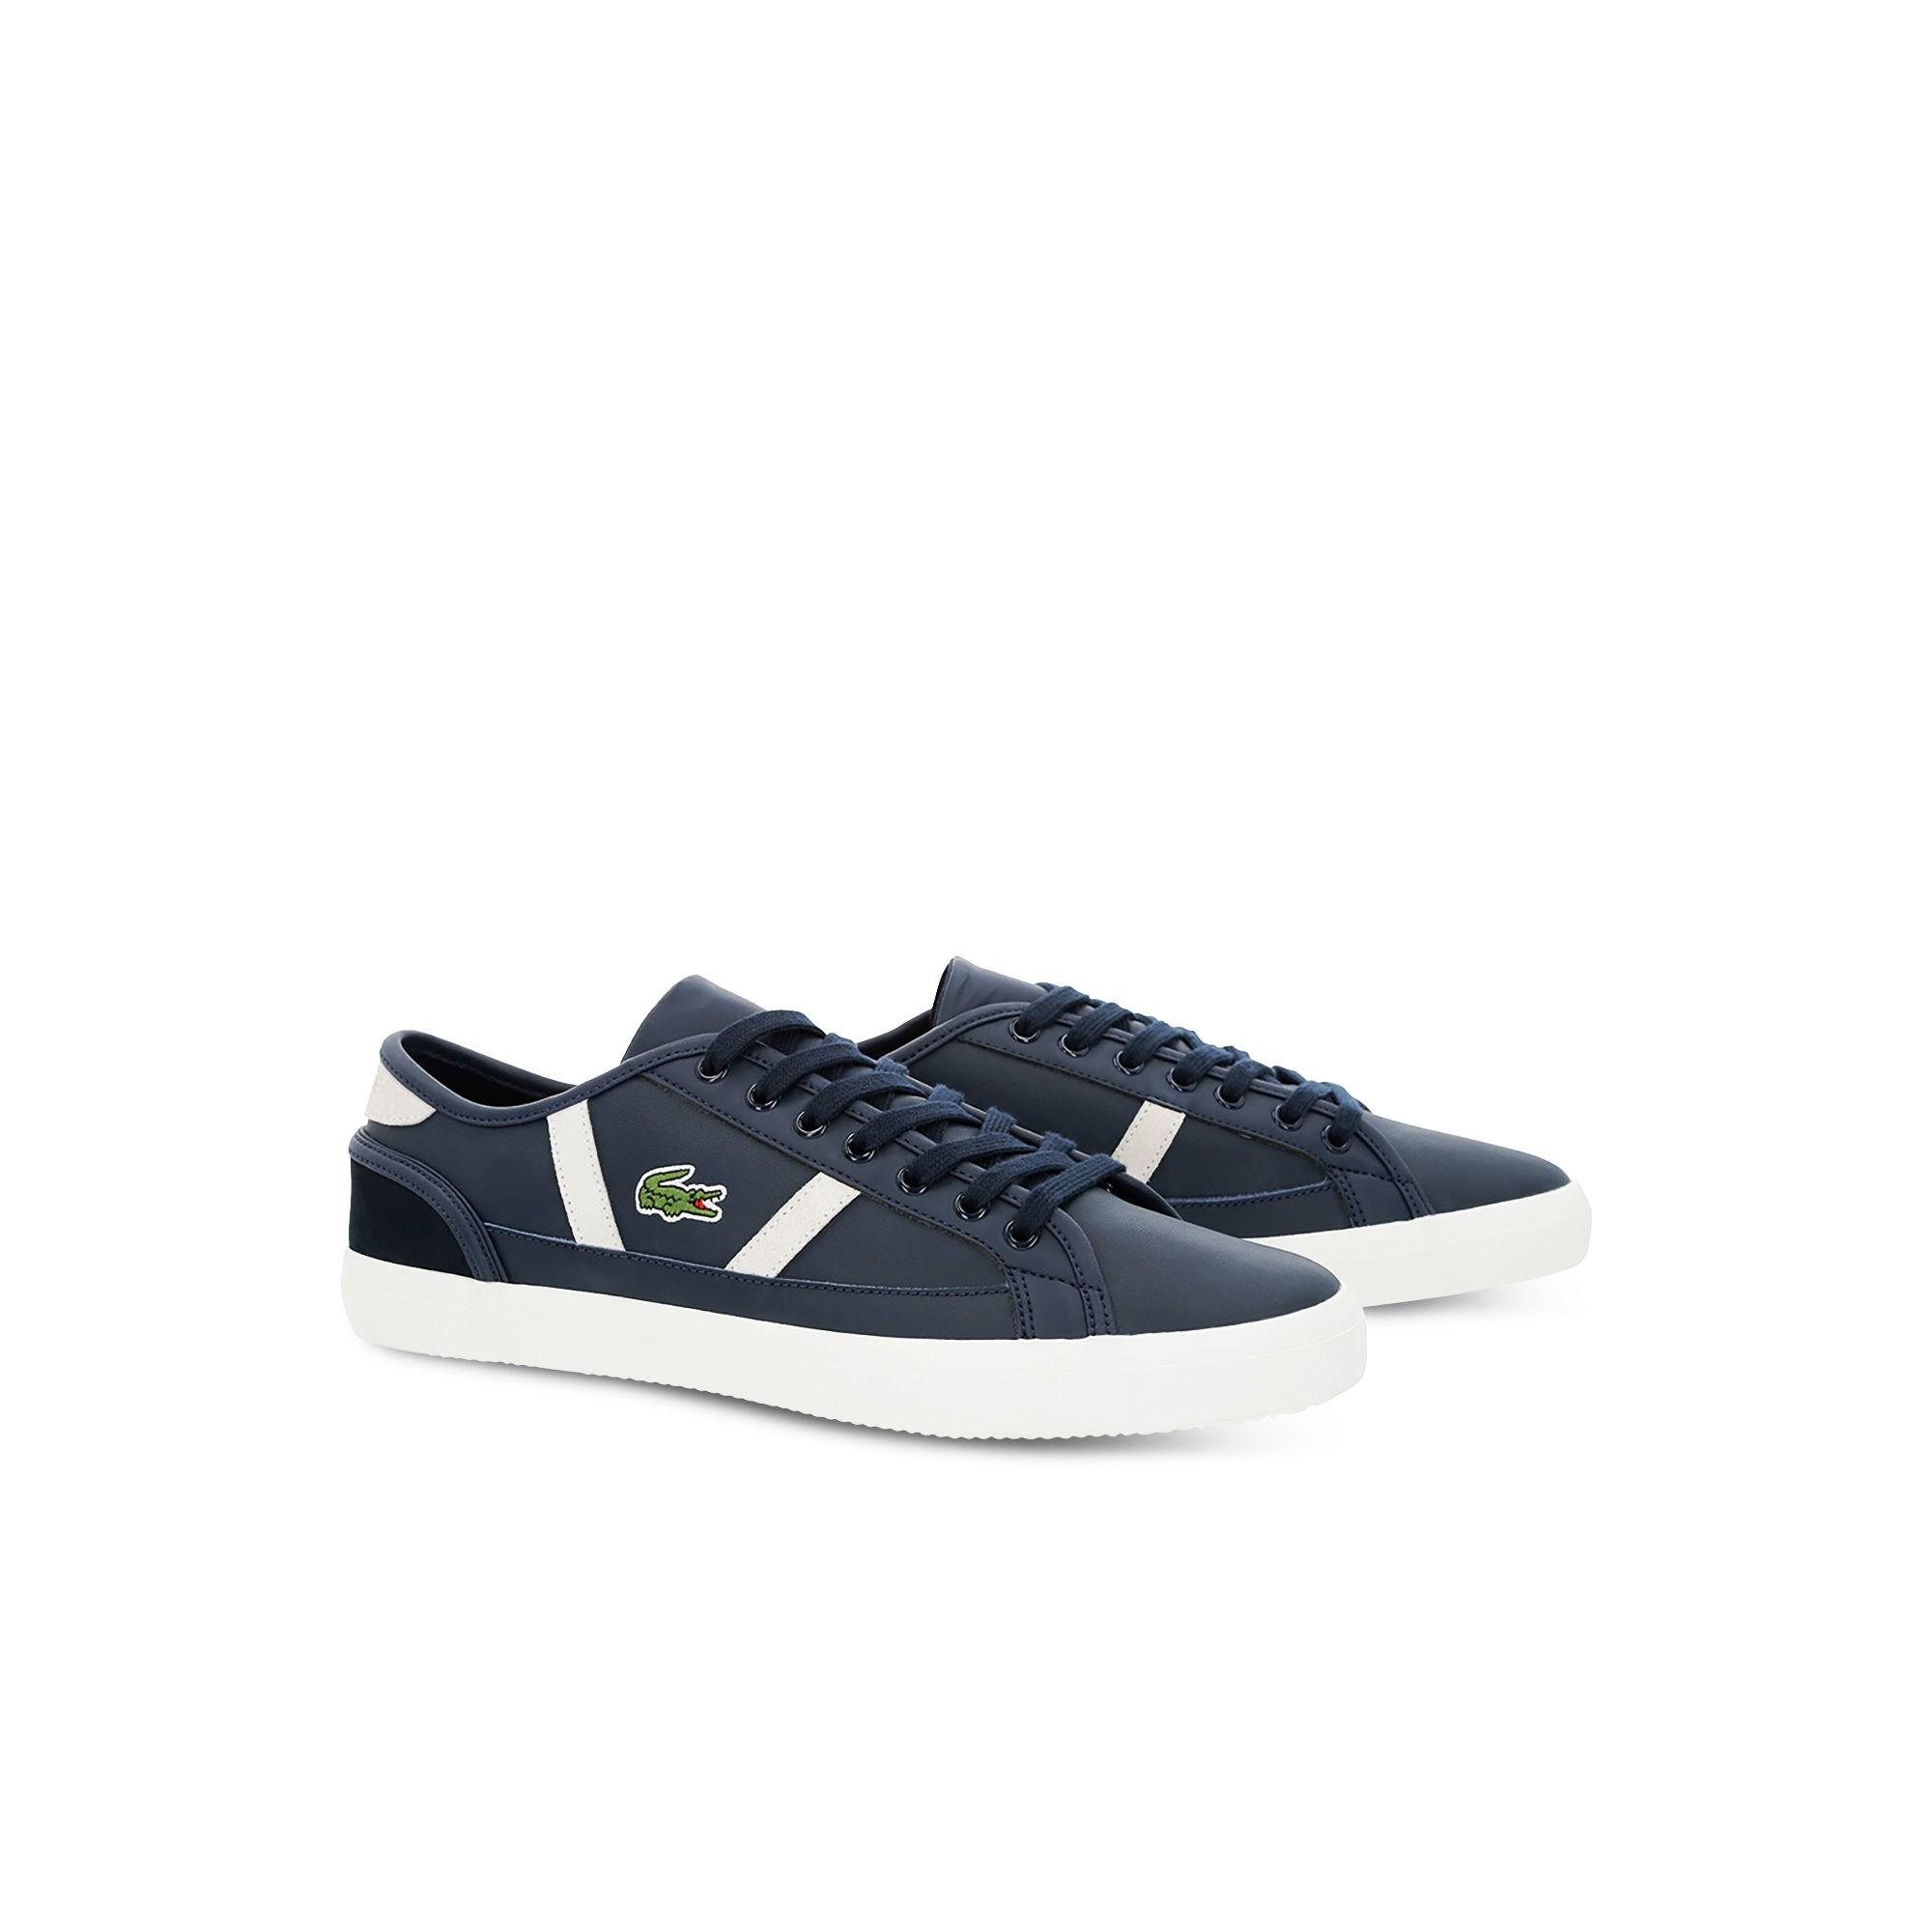 459d4af7b Lyst - Lacoste Sideline Leather And Suede Sneakers in Blue for Men